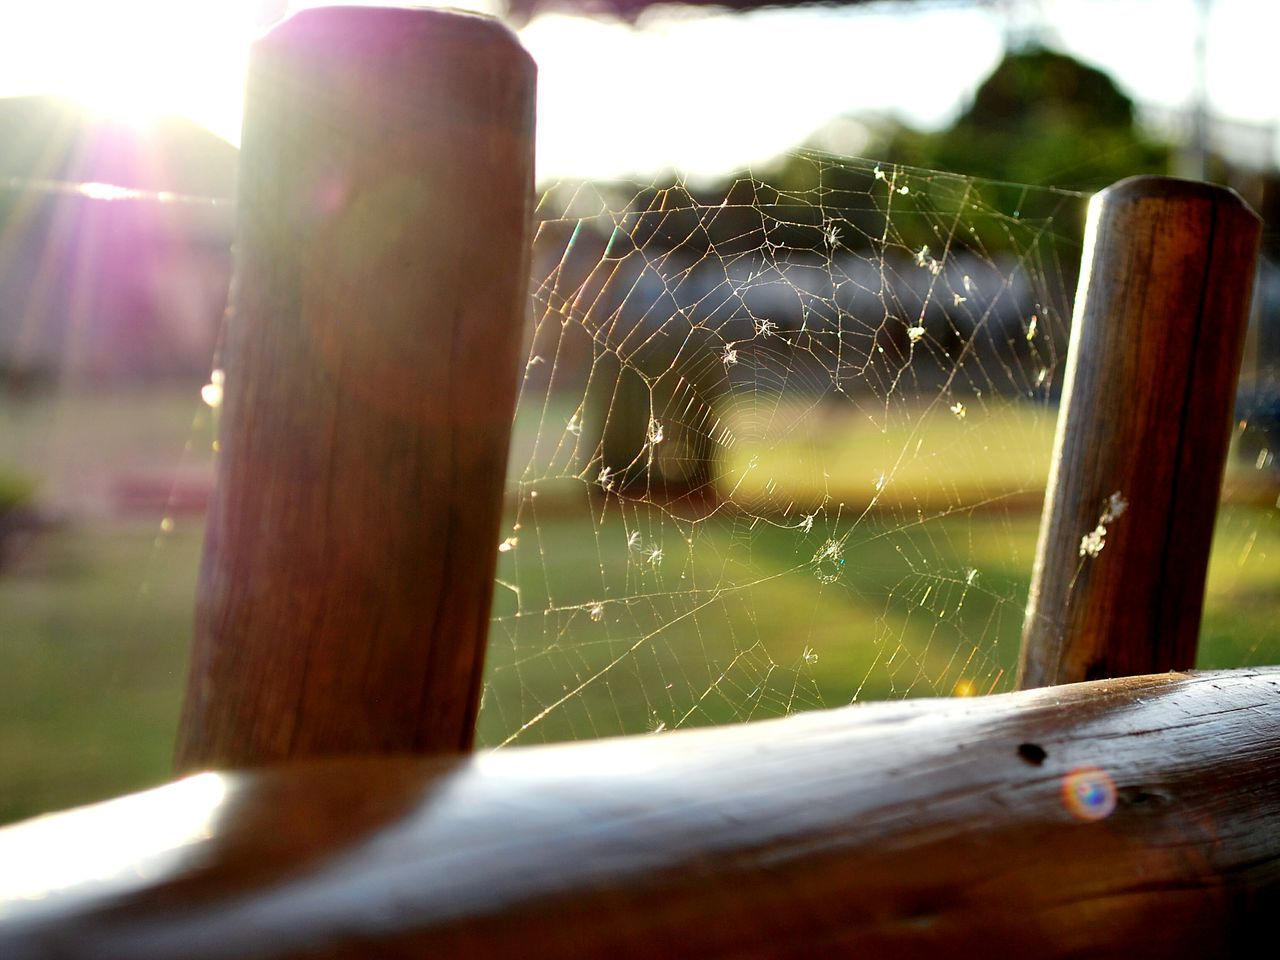 Spiderweb Spider Web Spiderwebs Against The Light Against The Sun Flare Flares Lensflare Lensflares Transparent Focus On Foreground Nature Popular EyeEm Best Pics EyeEm Best Shots EyeEm Gallery Outdoors Sunset Wood Day Nature Photography Sunlight Light Nature_collection Sunshine